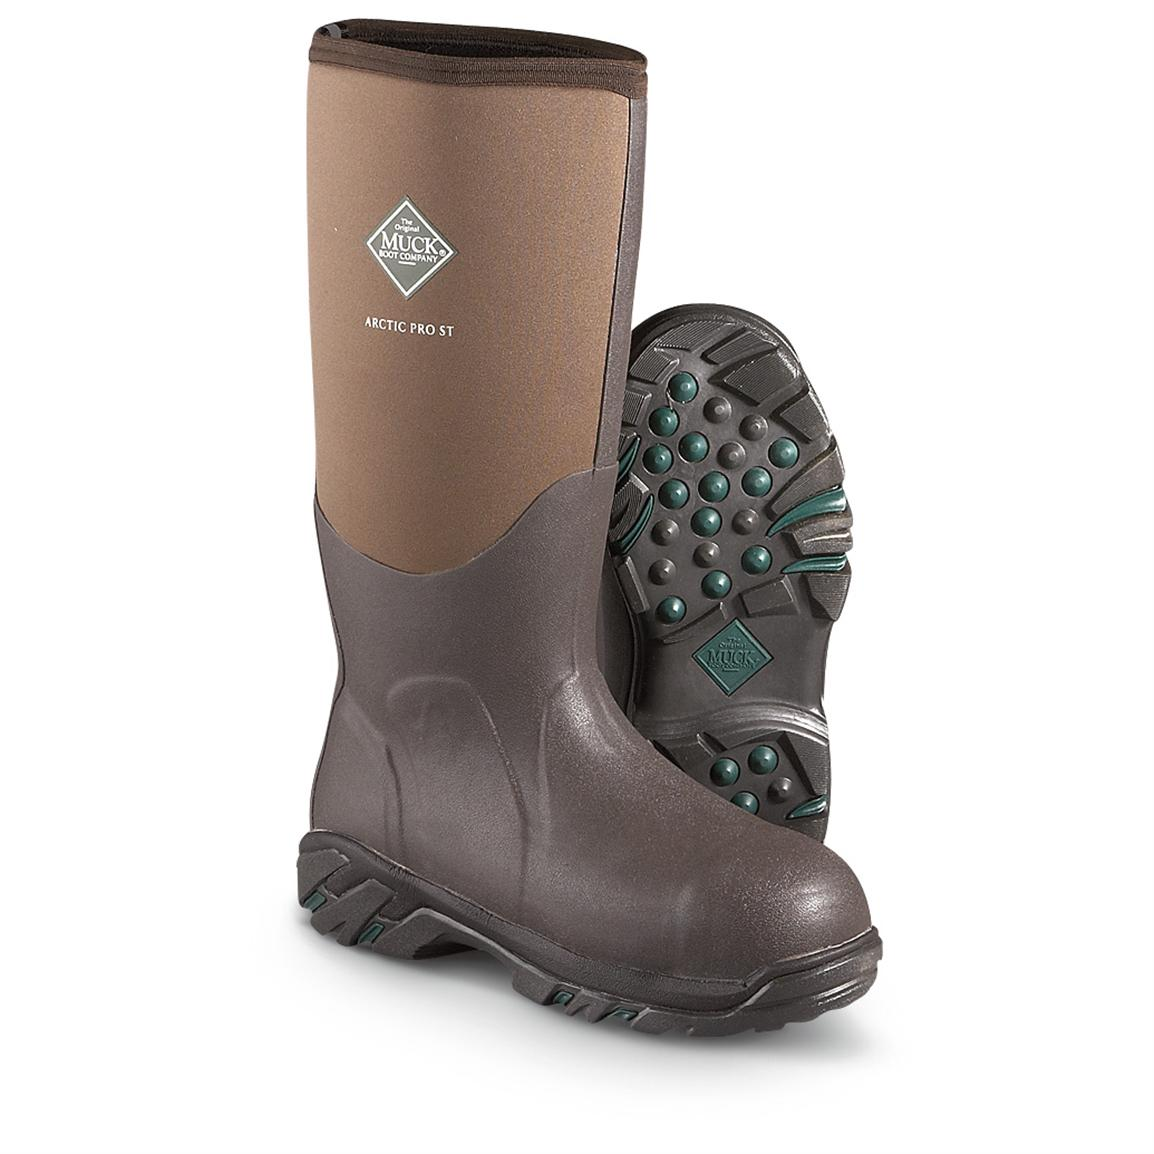 Muck Boots For Sale Cheap